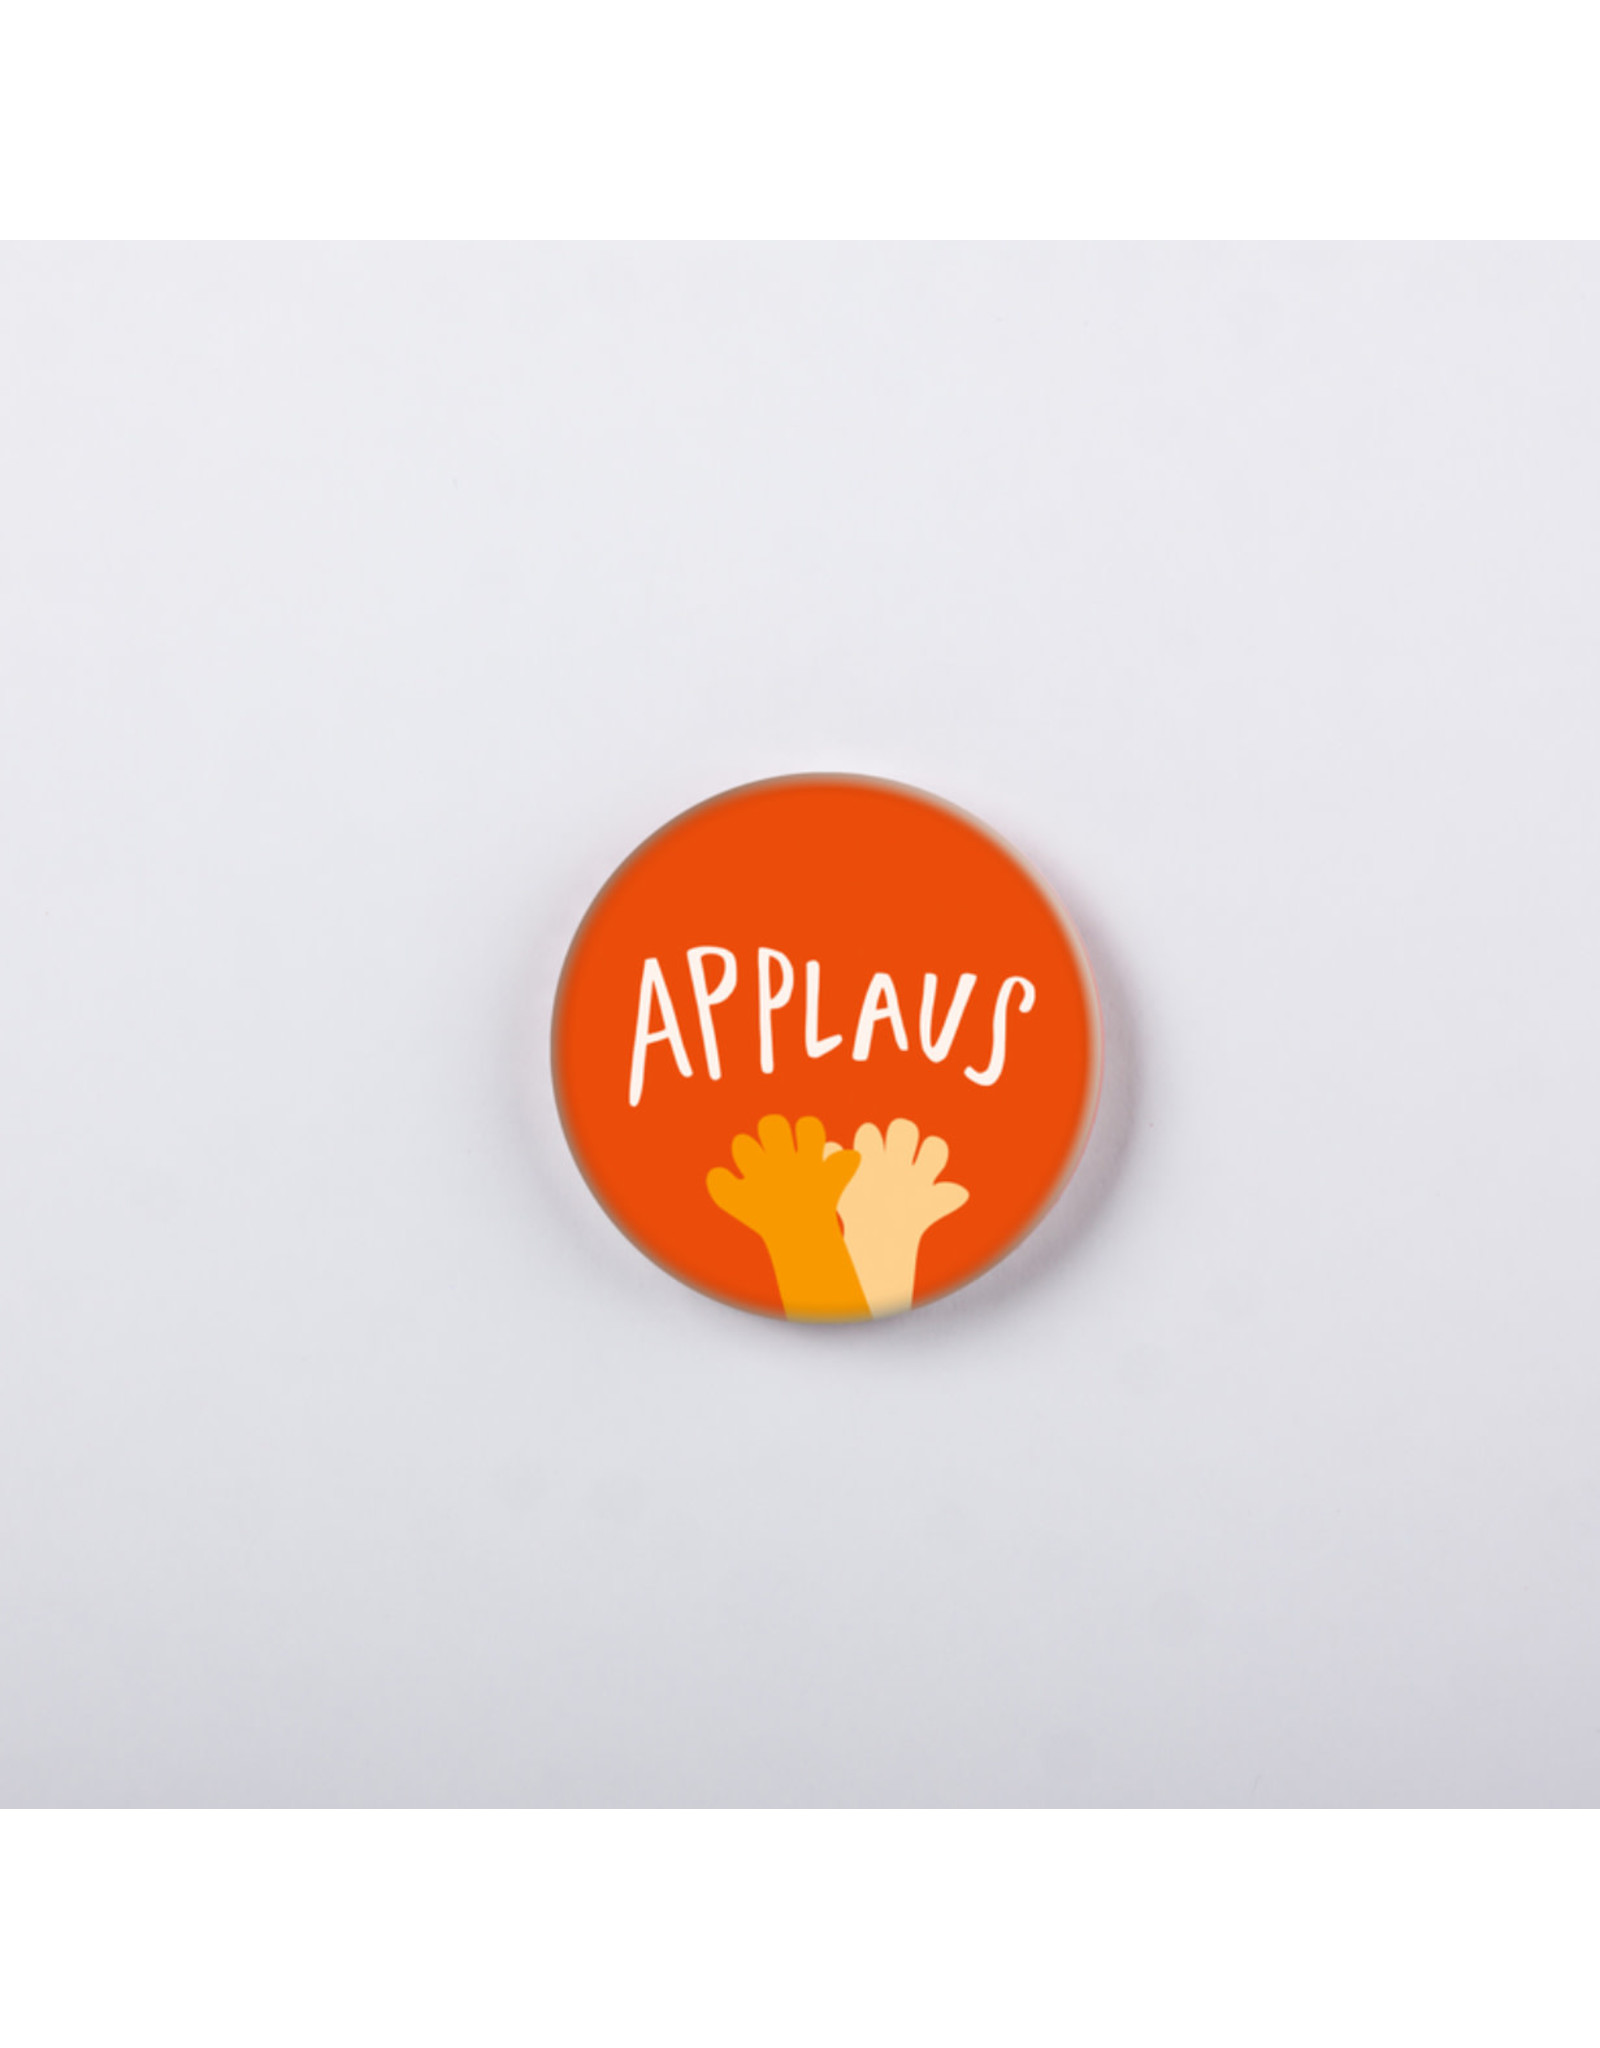 symposion Button - Applaus - Oranje - Ø 3,7 cm